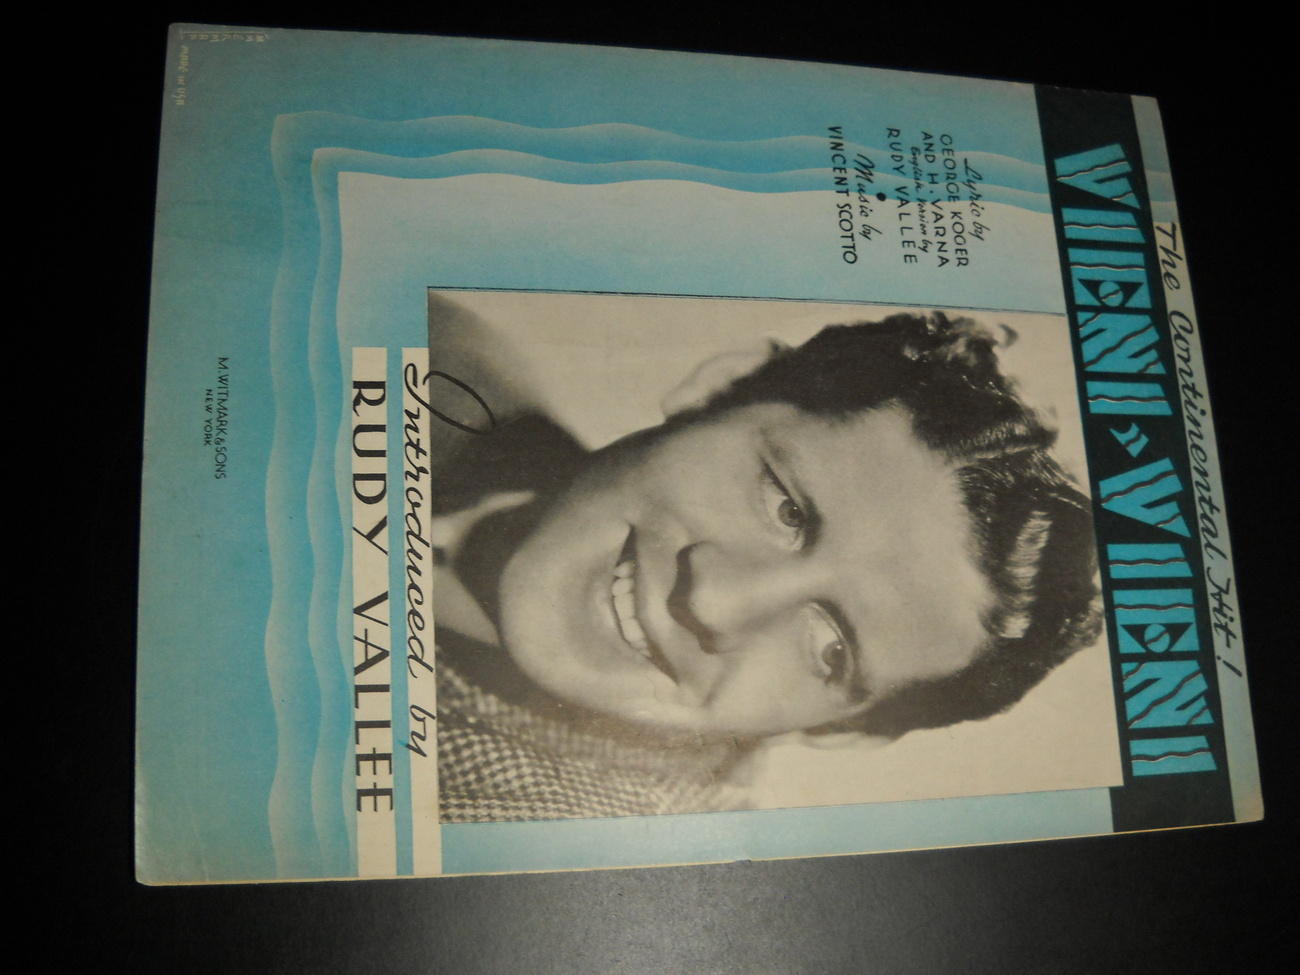 Sheet Music Vieni Vieni Rudy Vallee 1937 George Koger H Varna Vincent Scotto